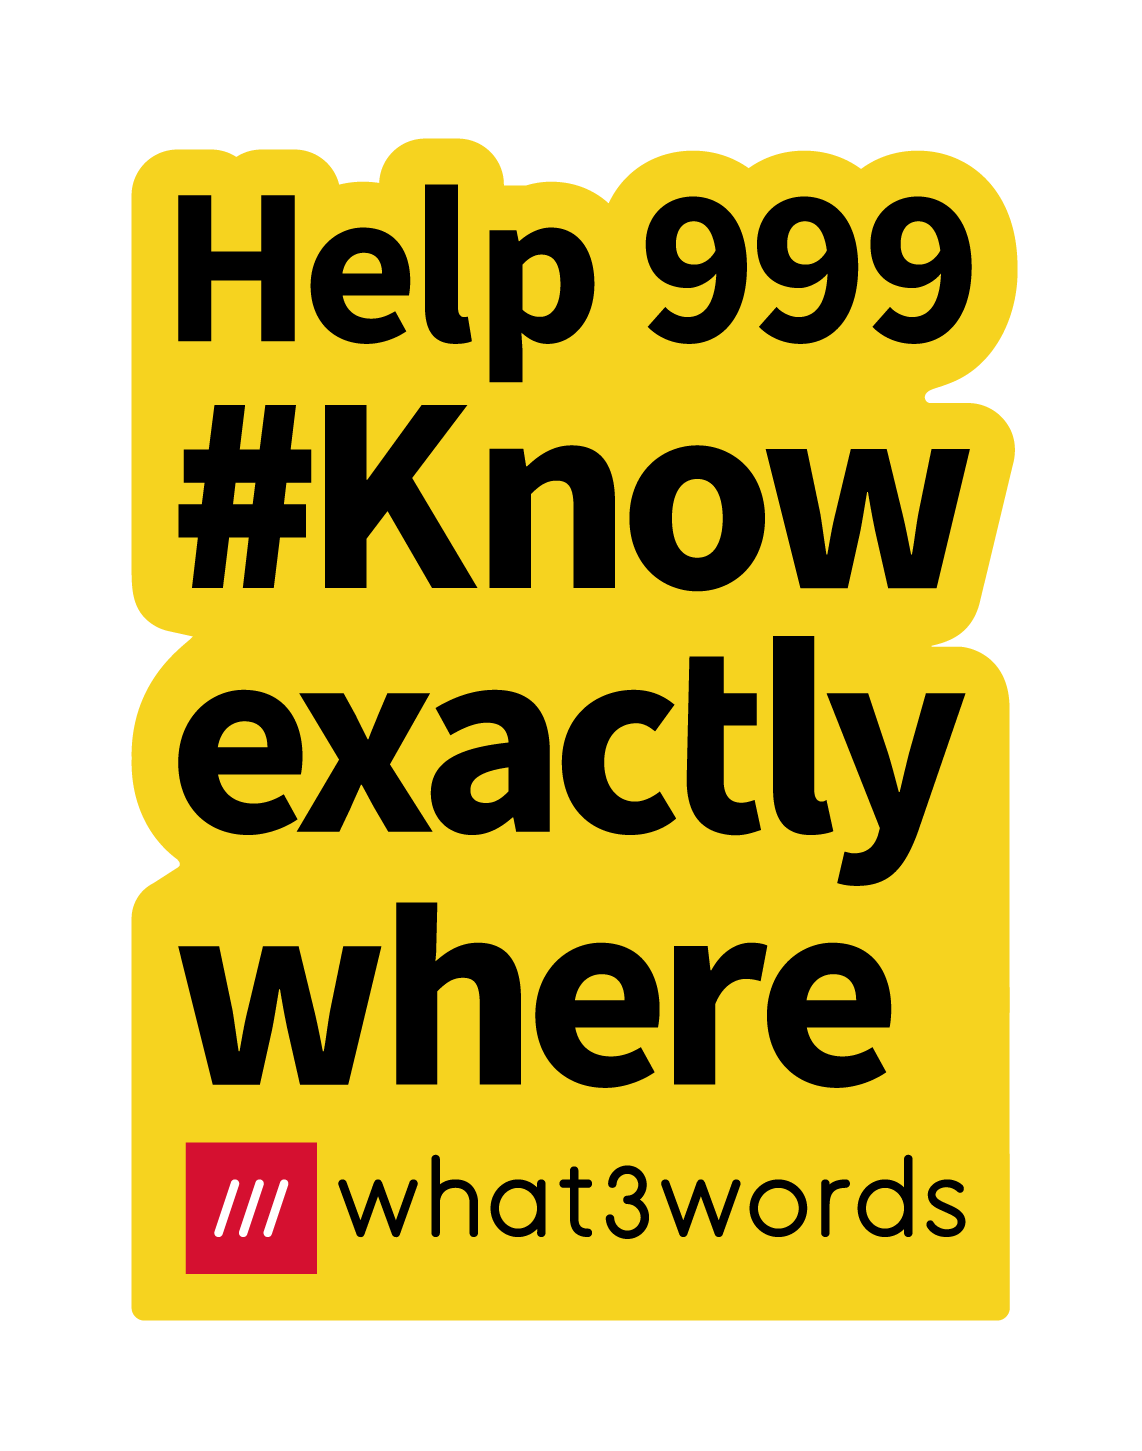 How what3words can help us #KnowExactlyWhere